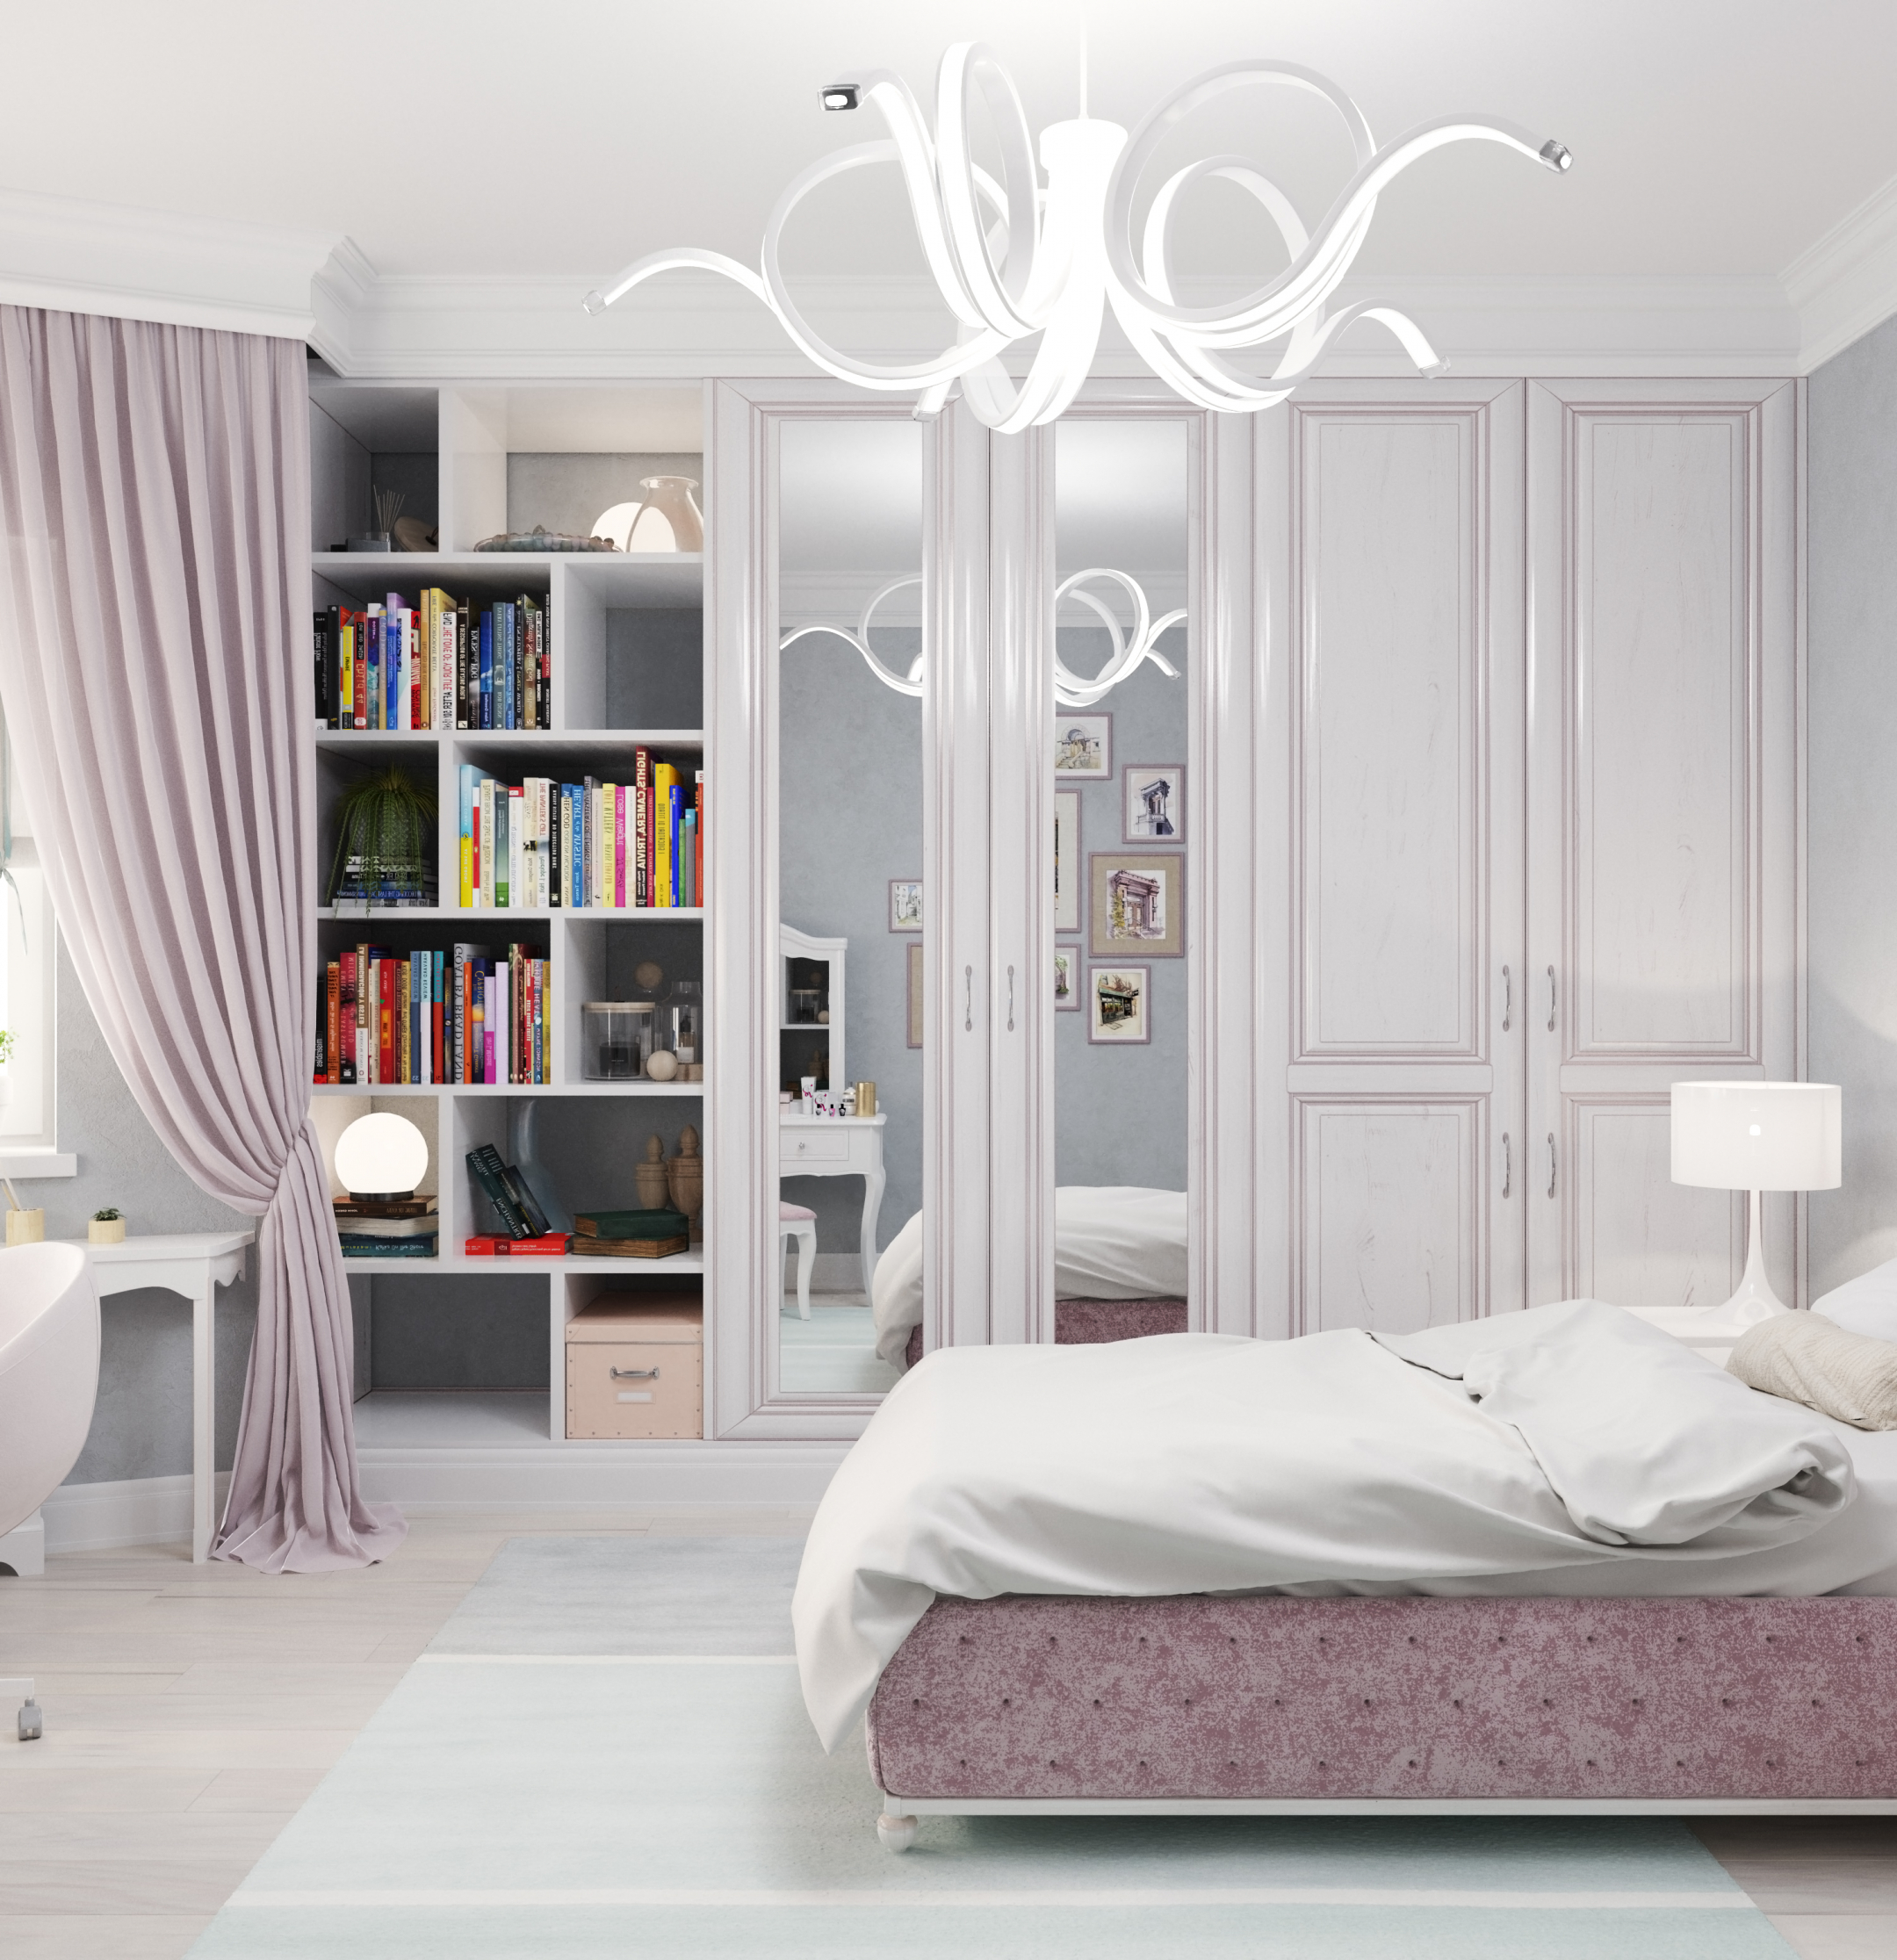 Bedroom. in 3d max corona render image